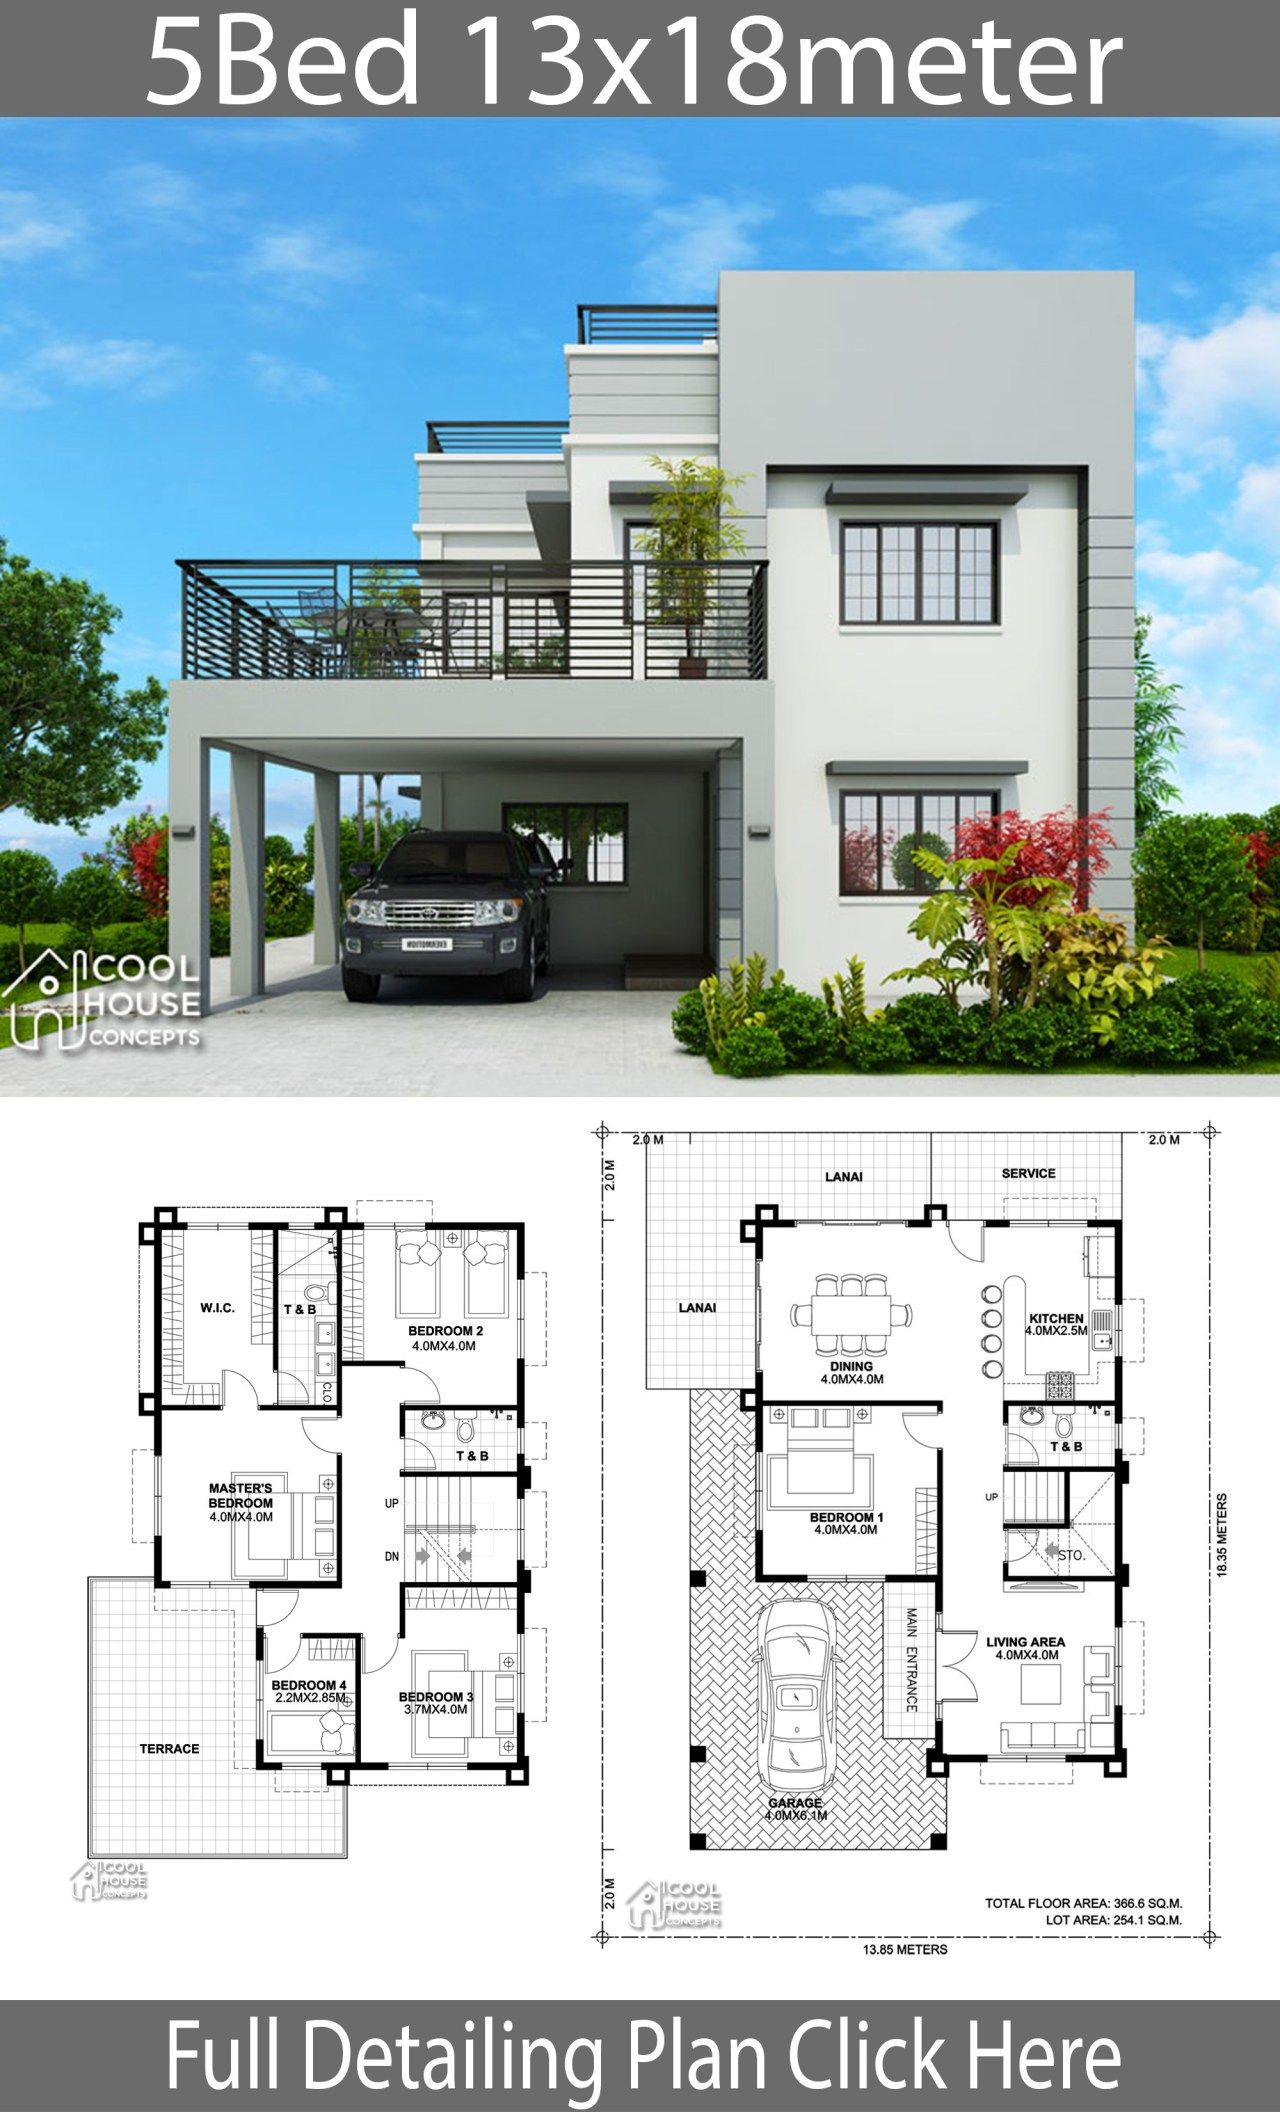 Home Design Plan 13x18m With 5 Bedrooms Home Ideas House Construction Plan House Plans Mansion Duplex House Design